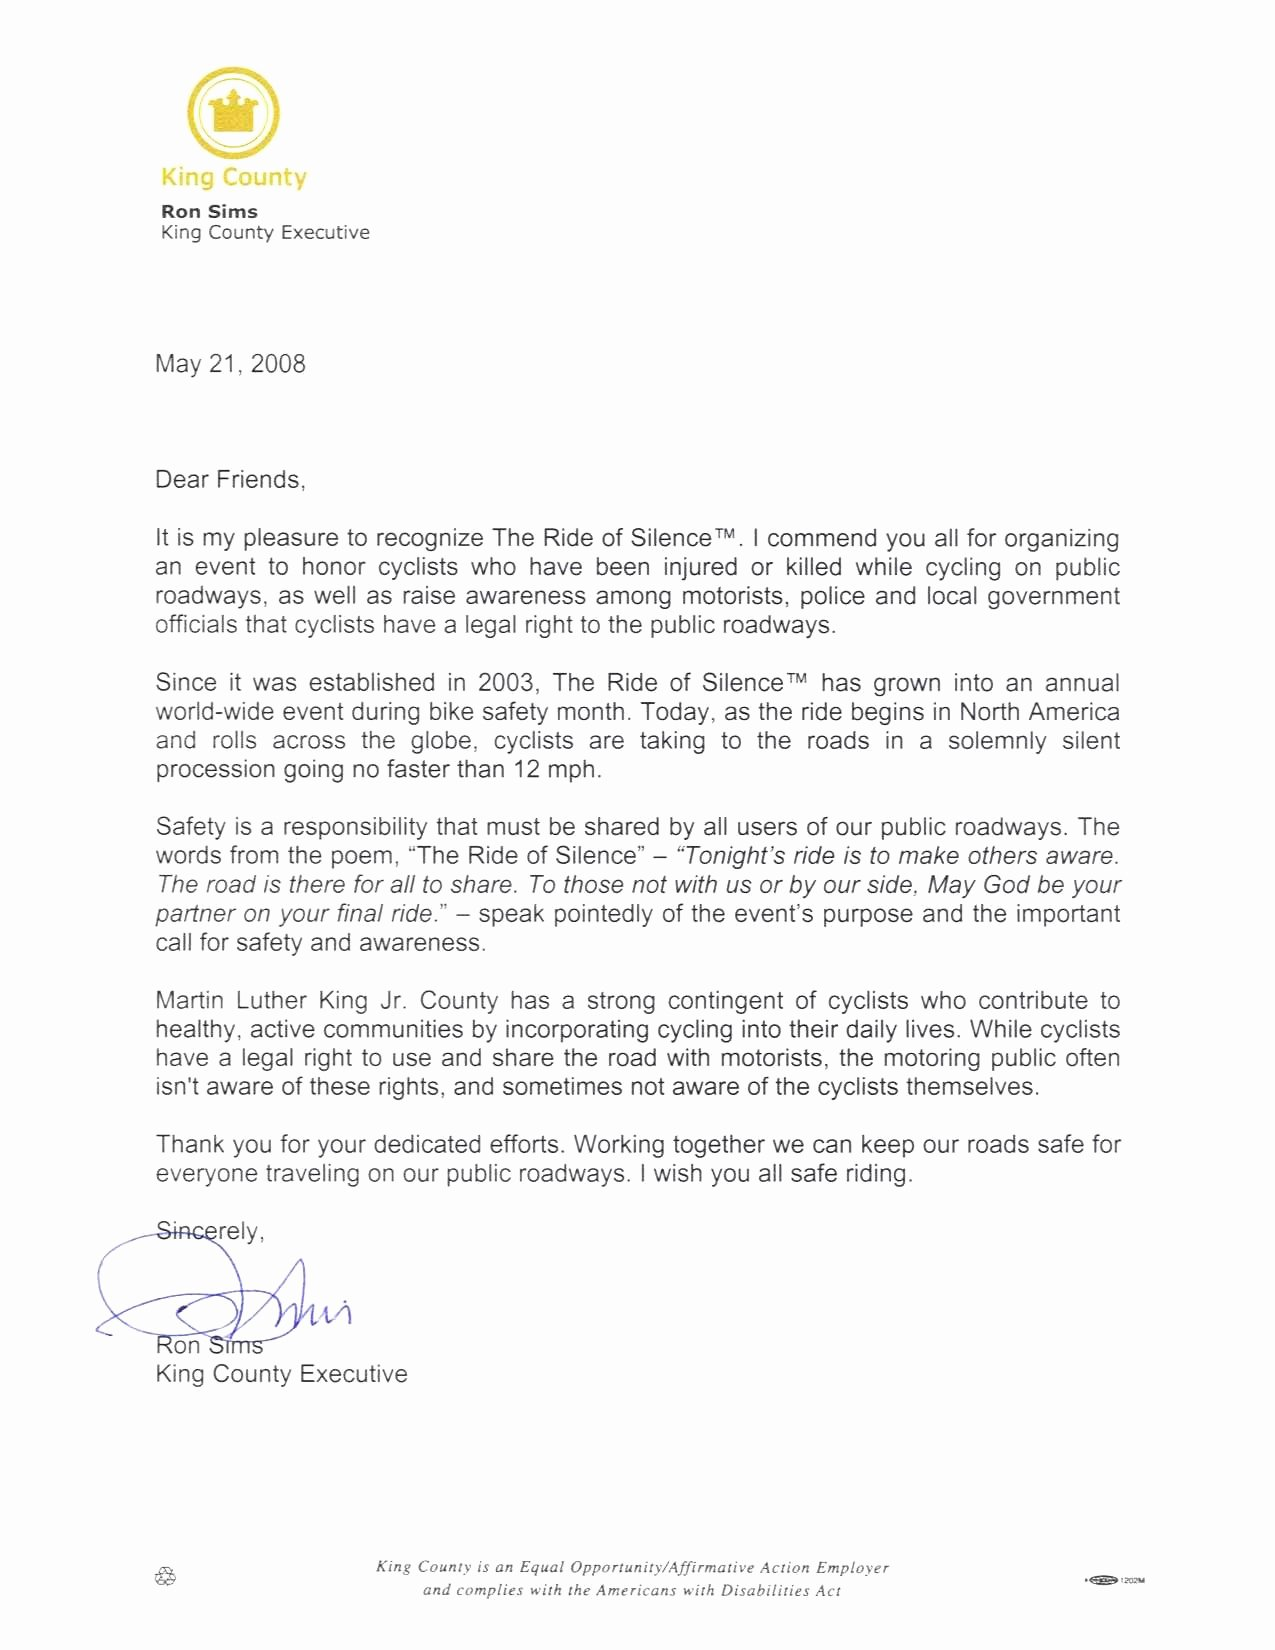 Medical School Recommendation Letter Example Luxury Sample Medical School Letter Re Mendation From